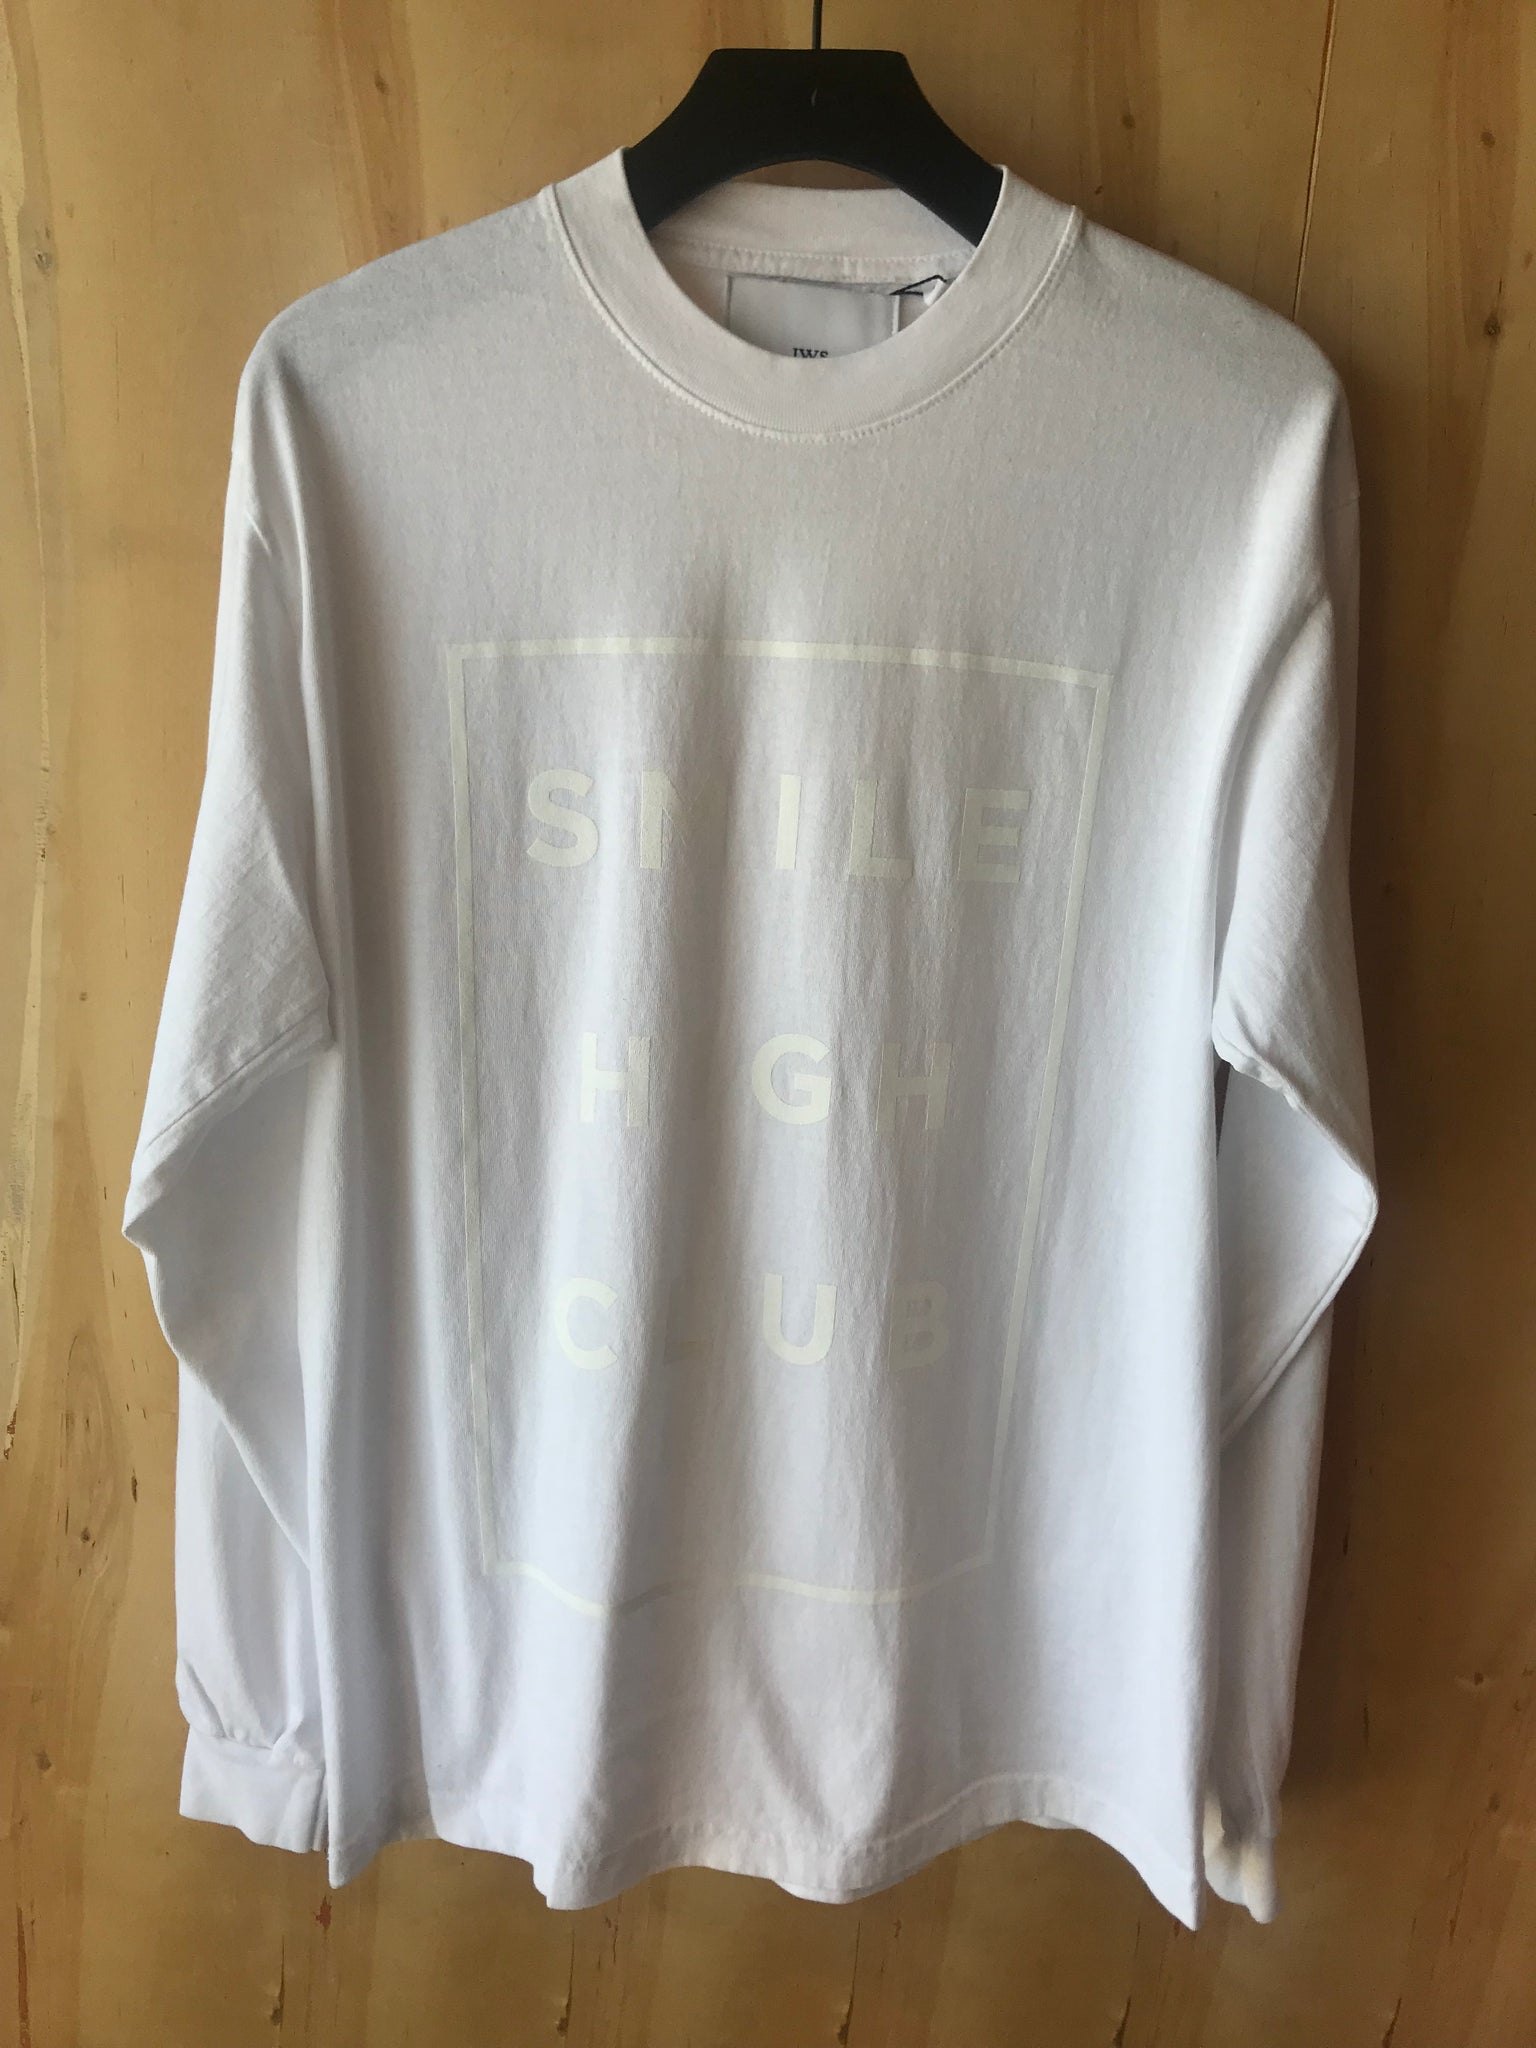 Smile High Club LS Tee